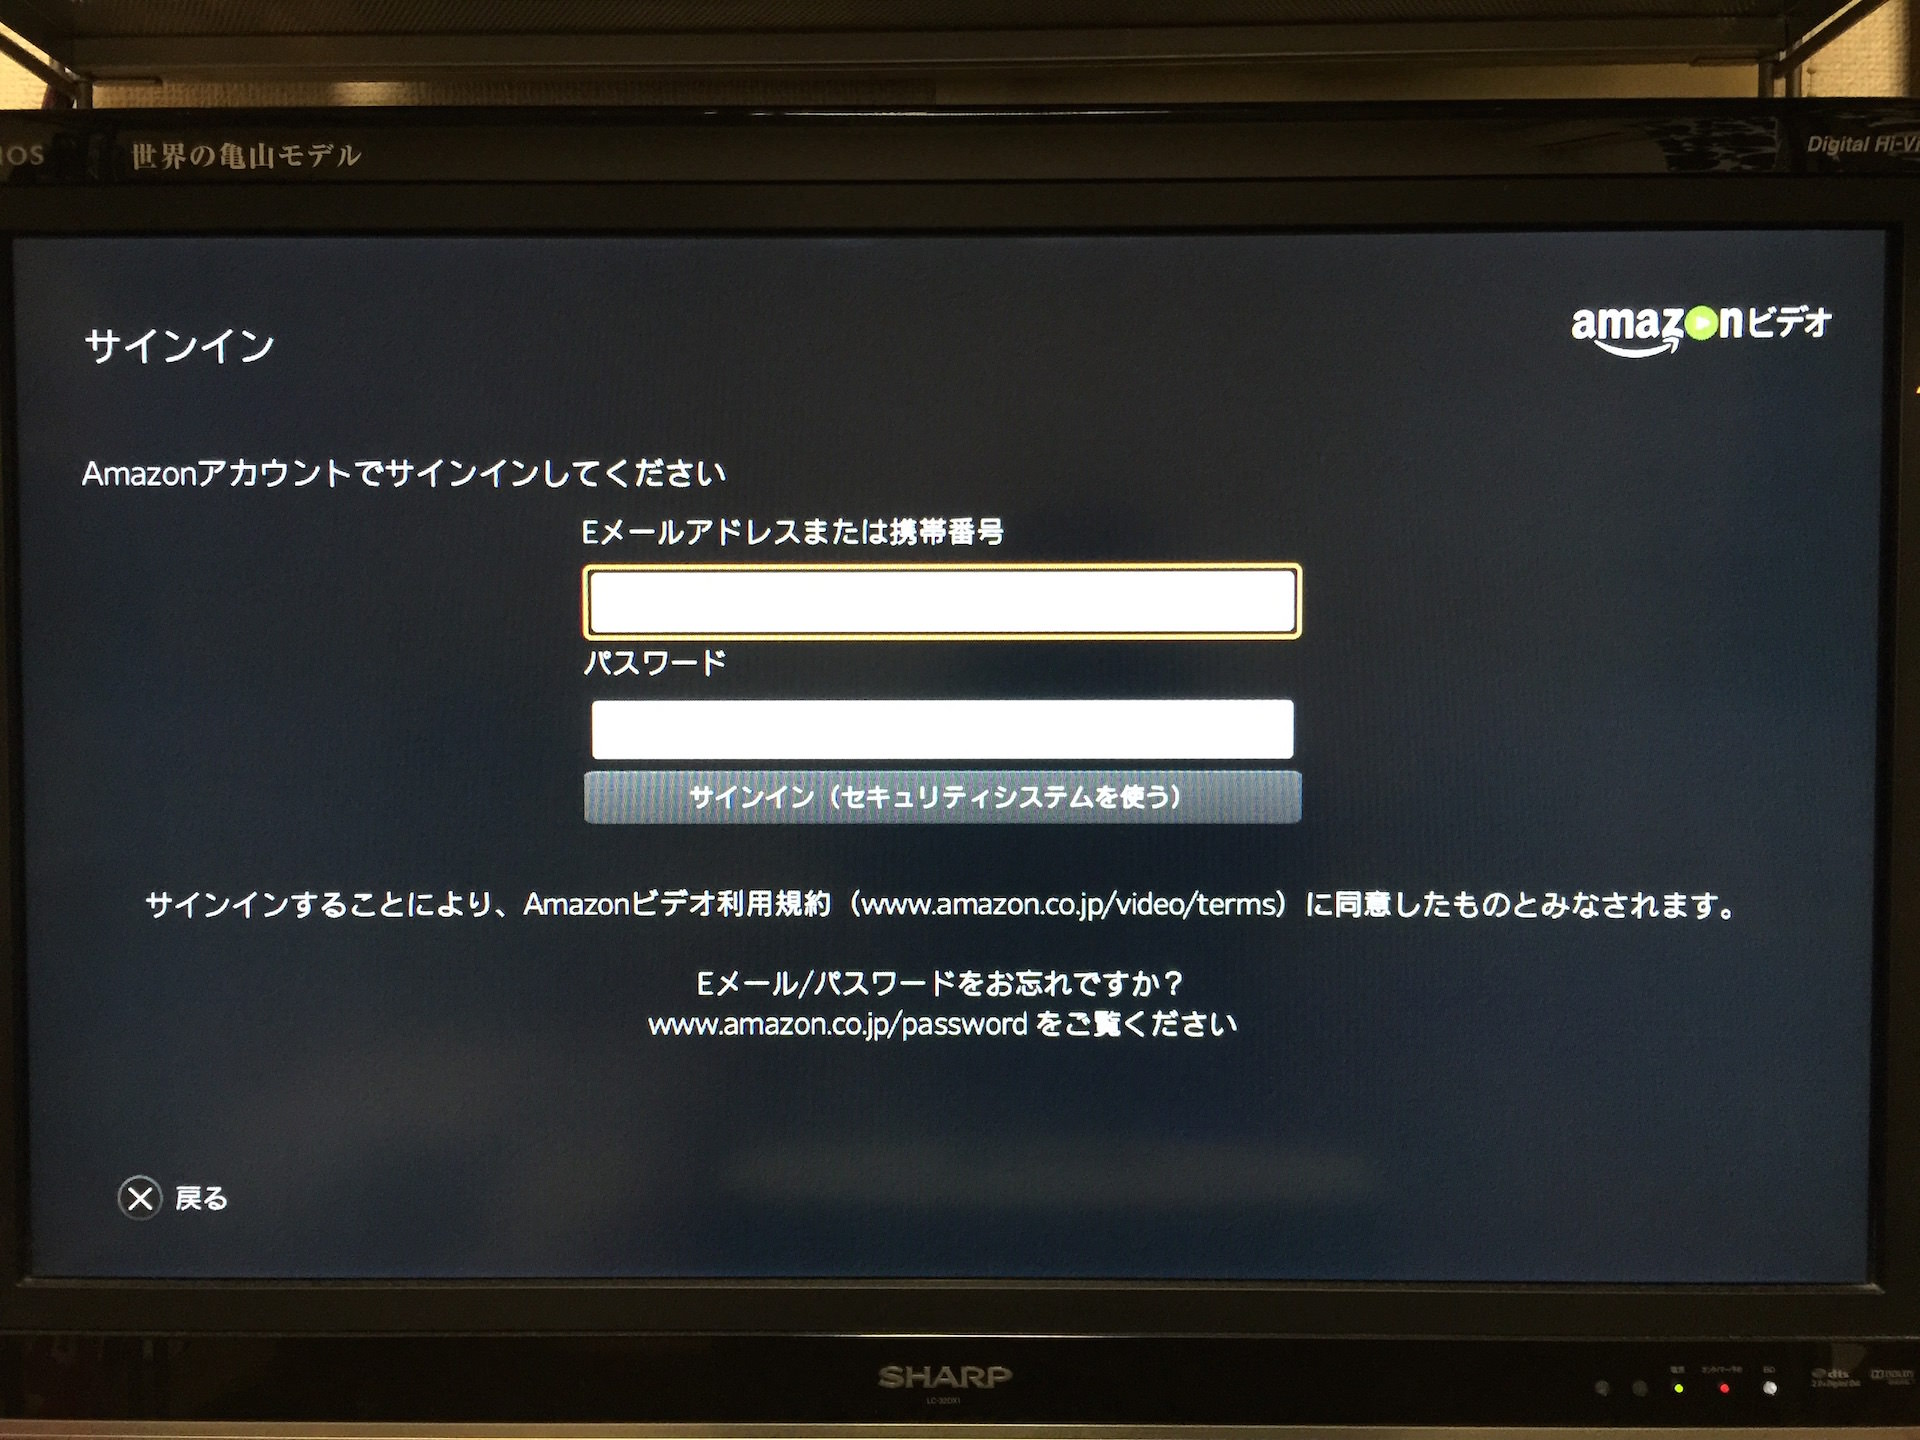 How to watch amazon video in playstation 4 5